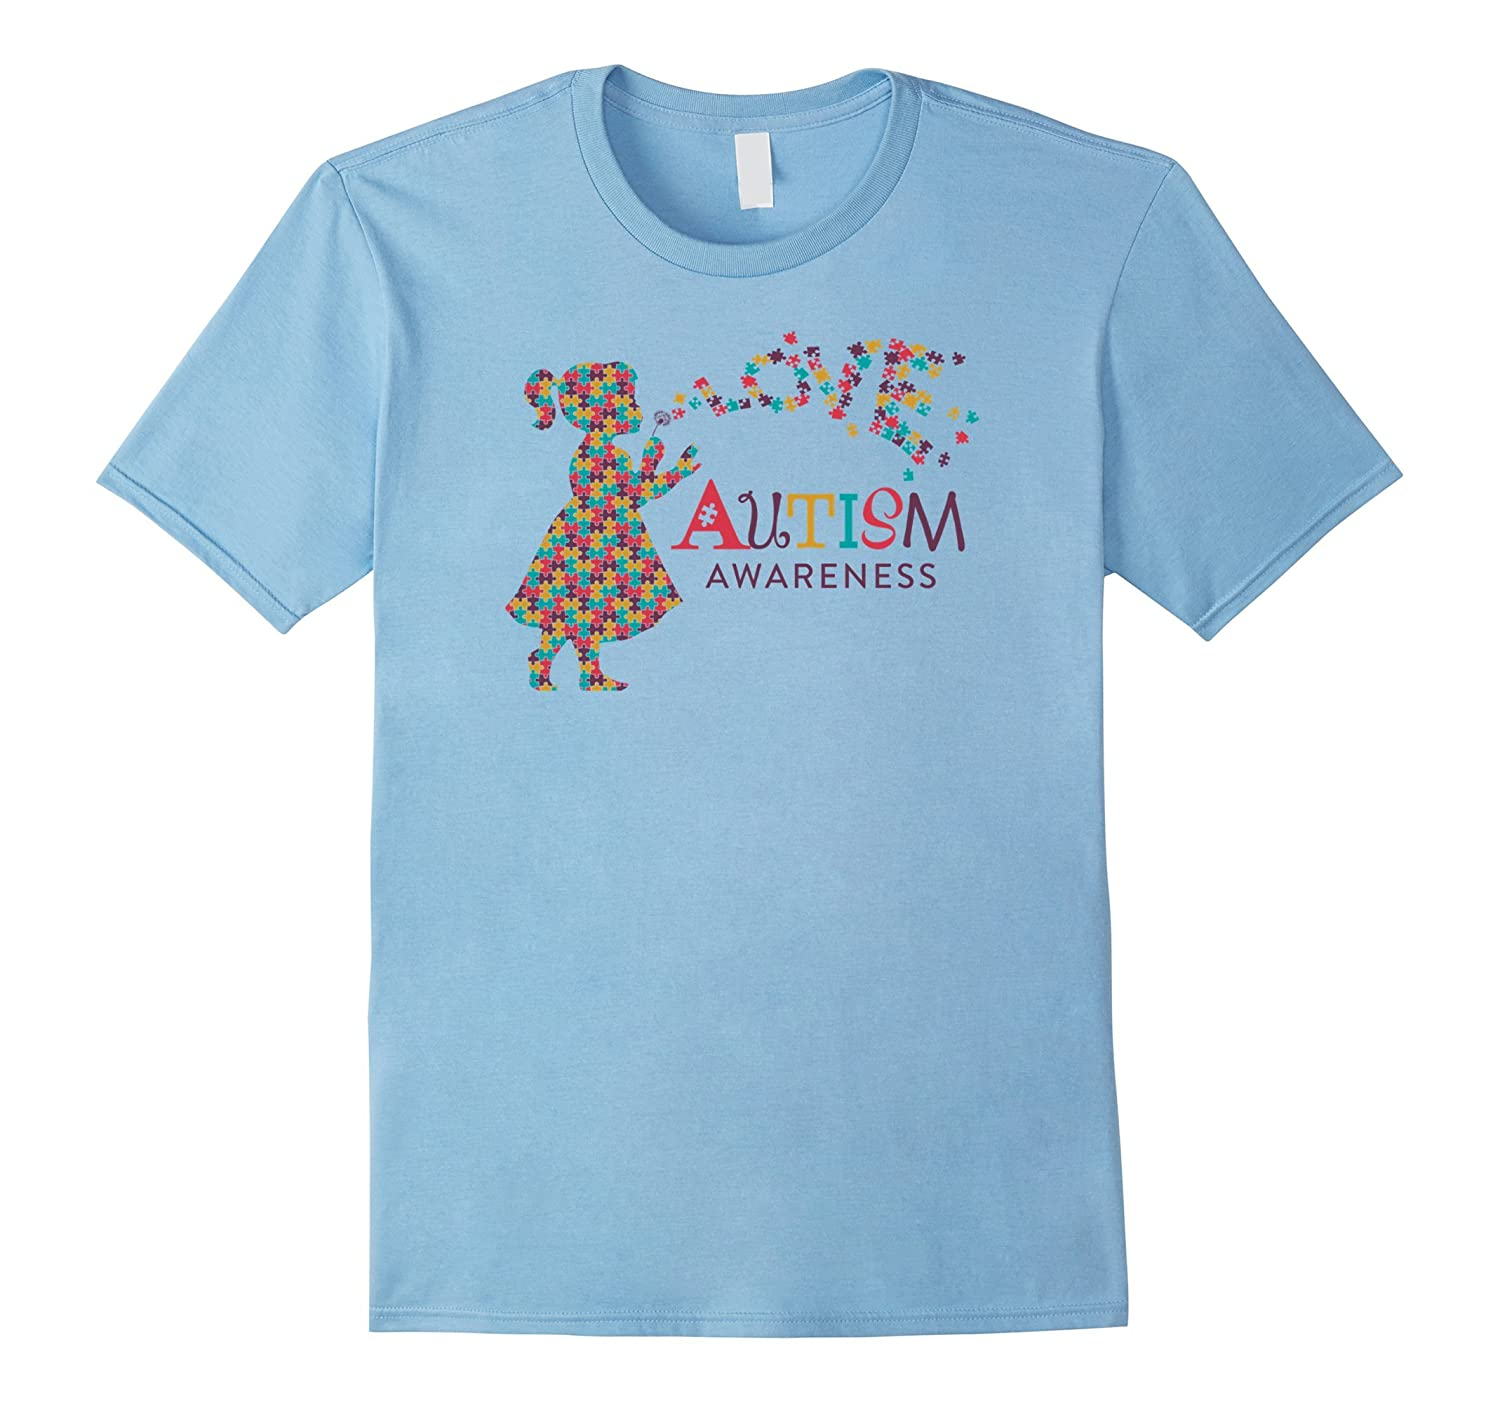 Autism Awareness Love T-Shirt For Moms Dads Or Kids-CD